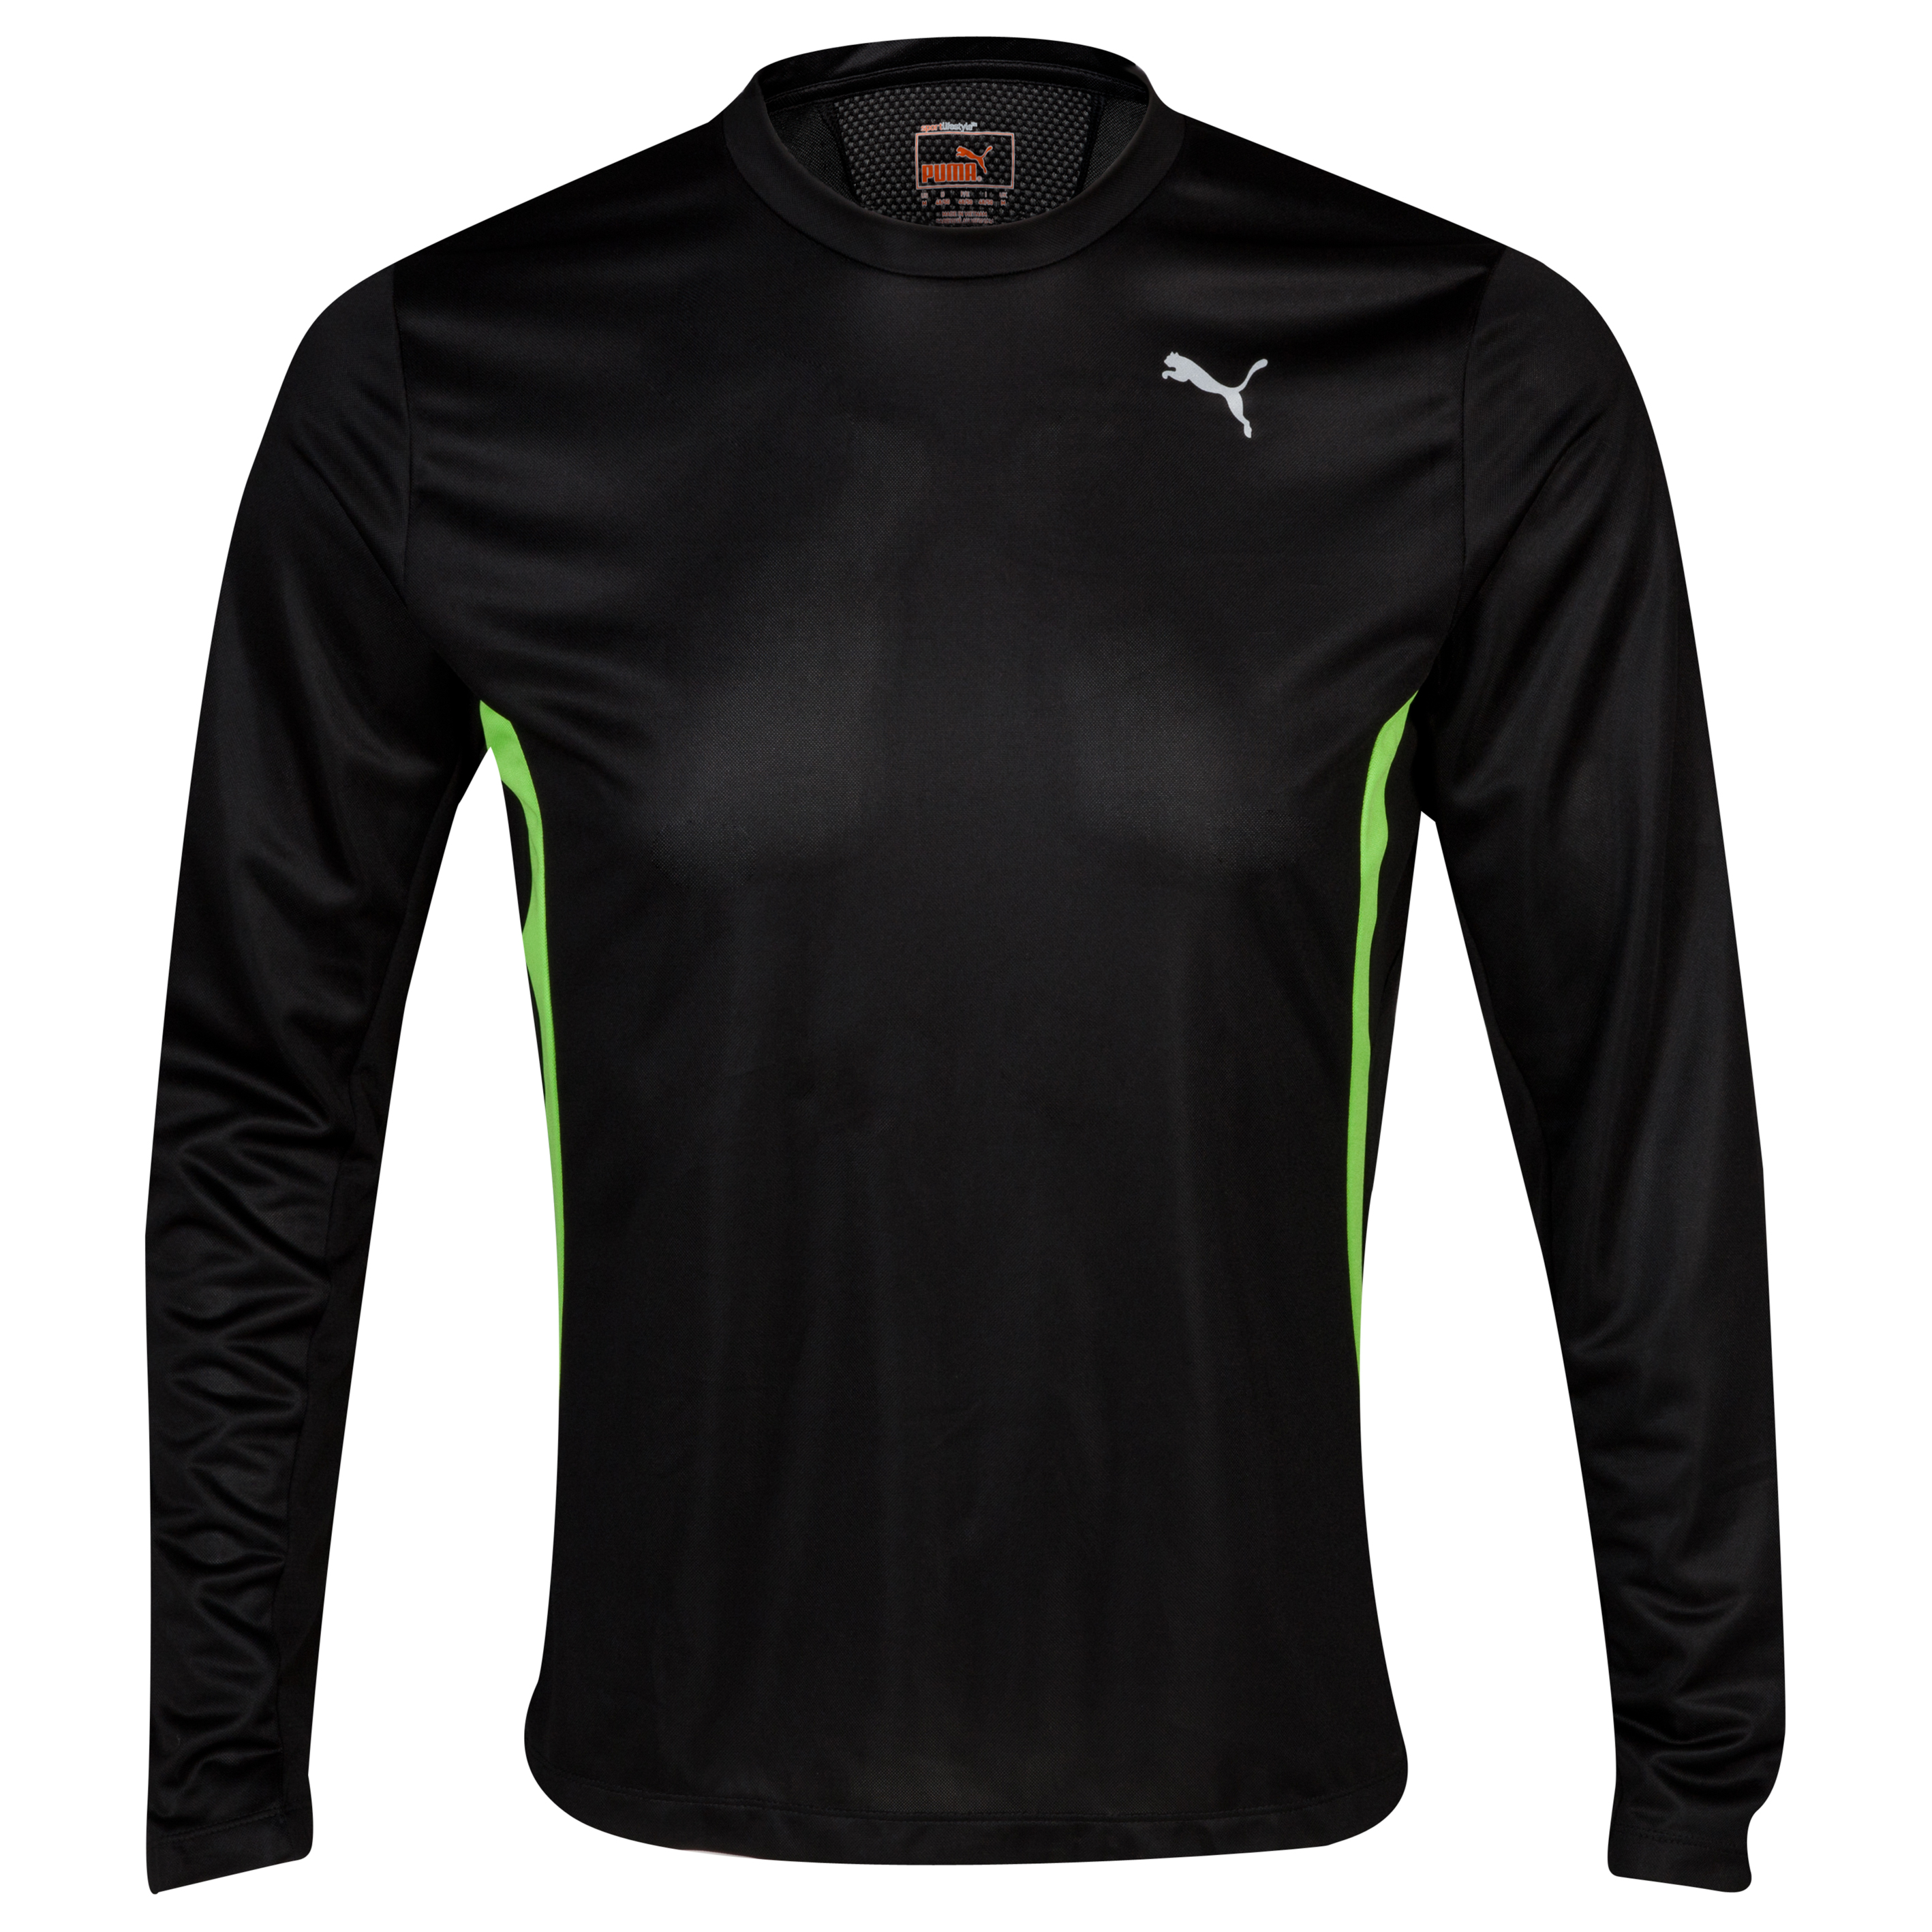 Puma PE Running L/S T-Shirt - Black/Jasmine Green